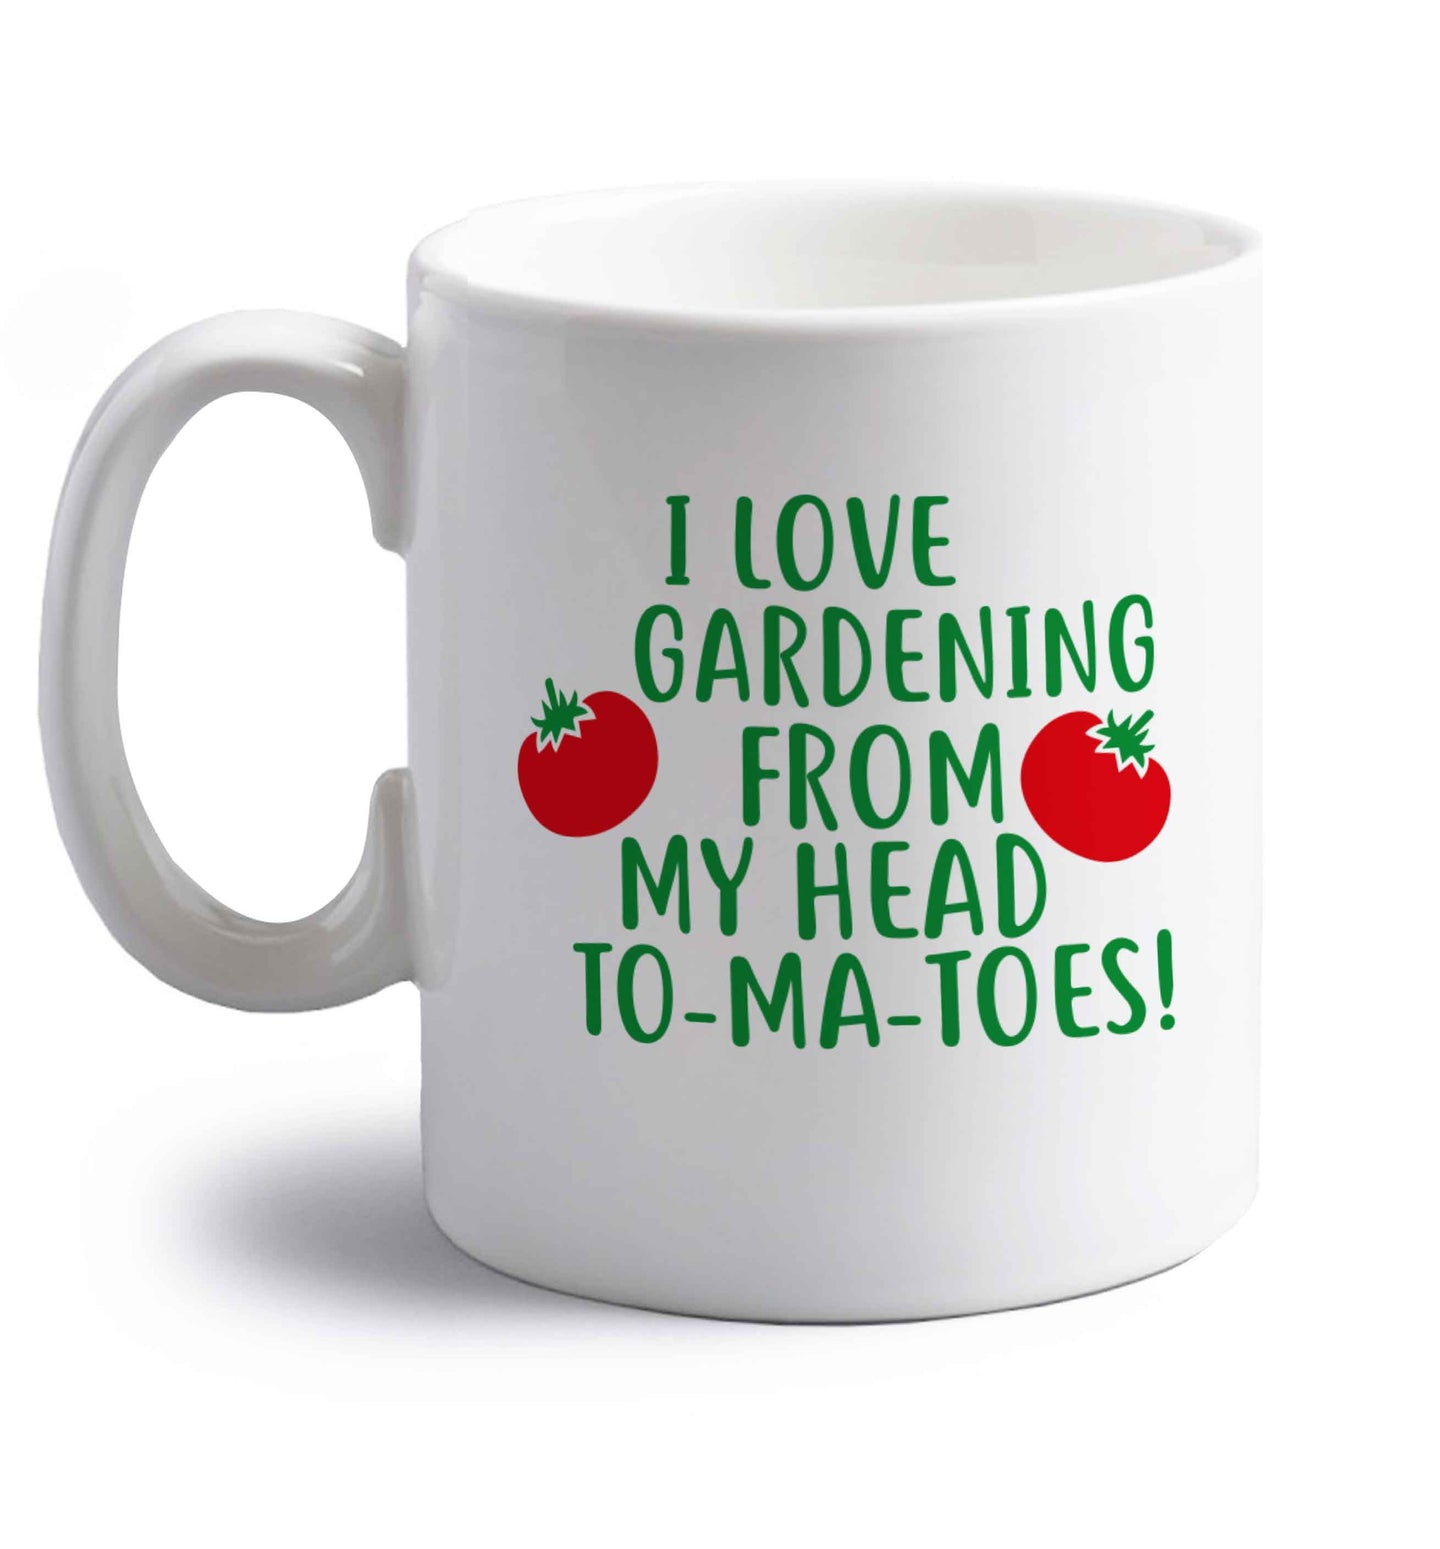 I love gardening from my head to-ma-toes right handed white ceramic mug